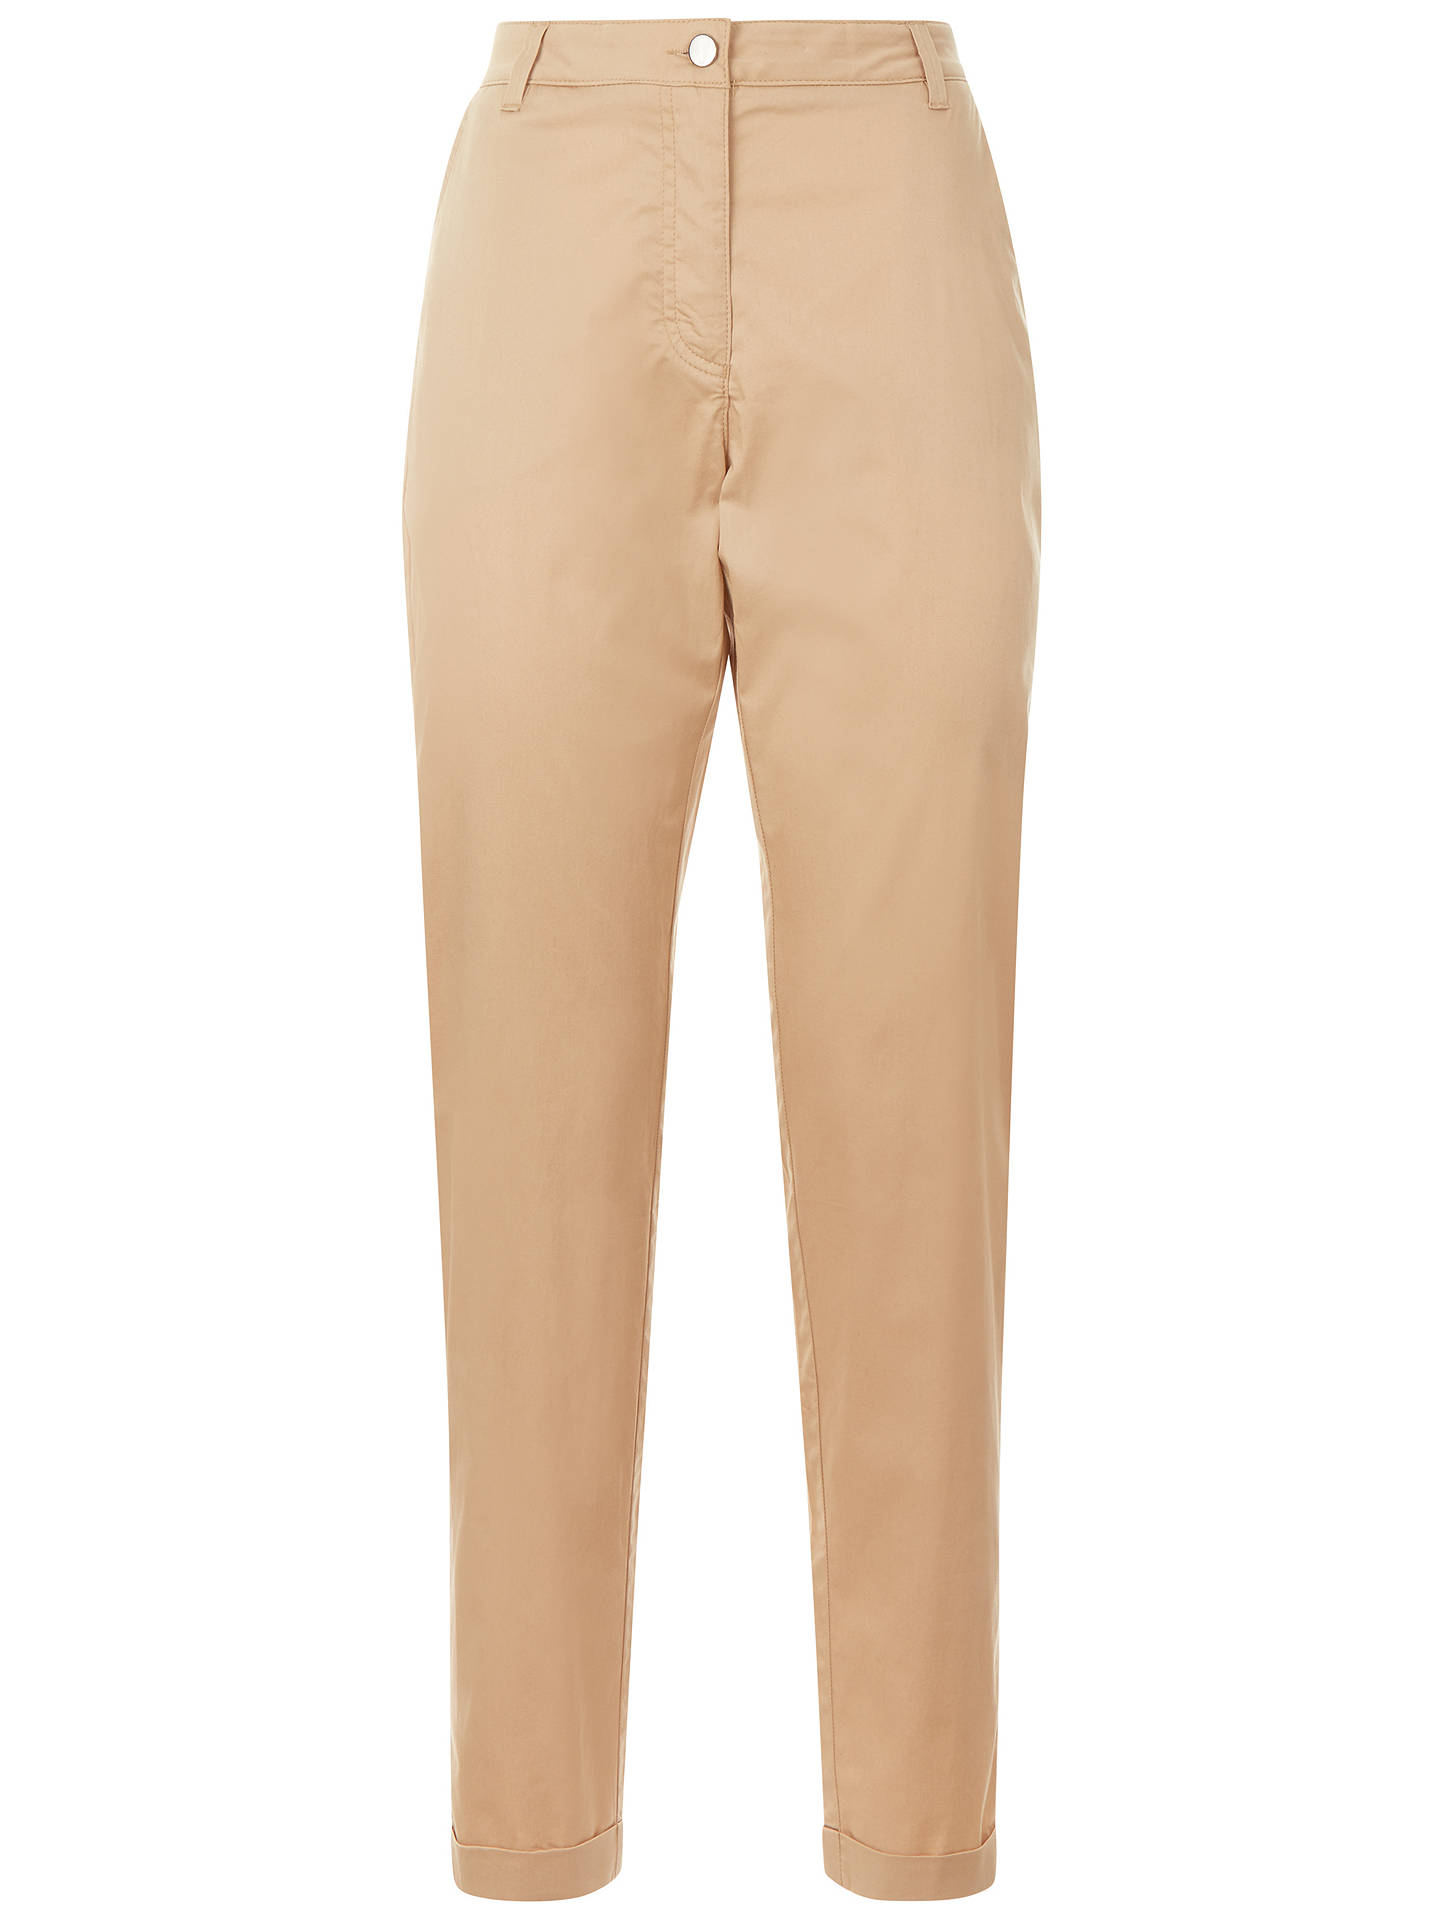 BuyJaeger Paperweight Chino Trousers, Stone, 6 Online at johnlewis.com